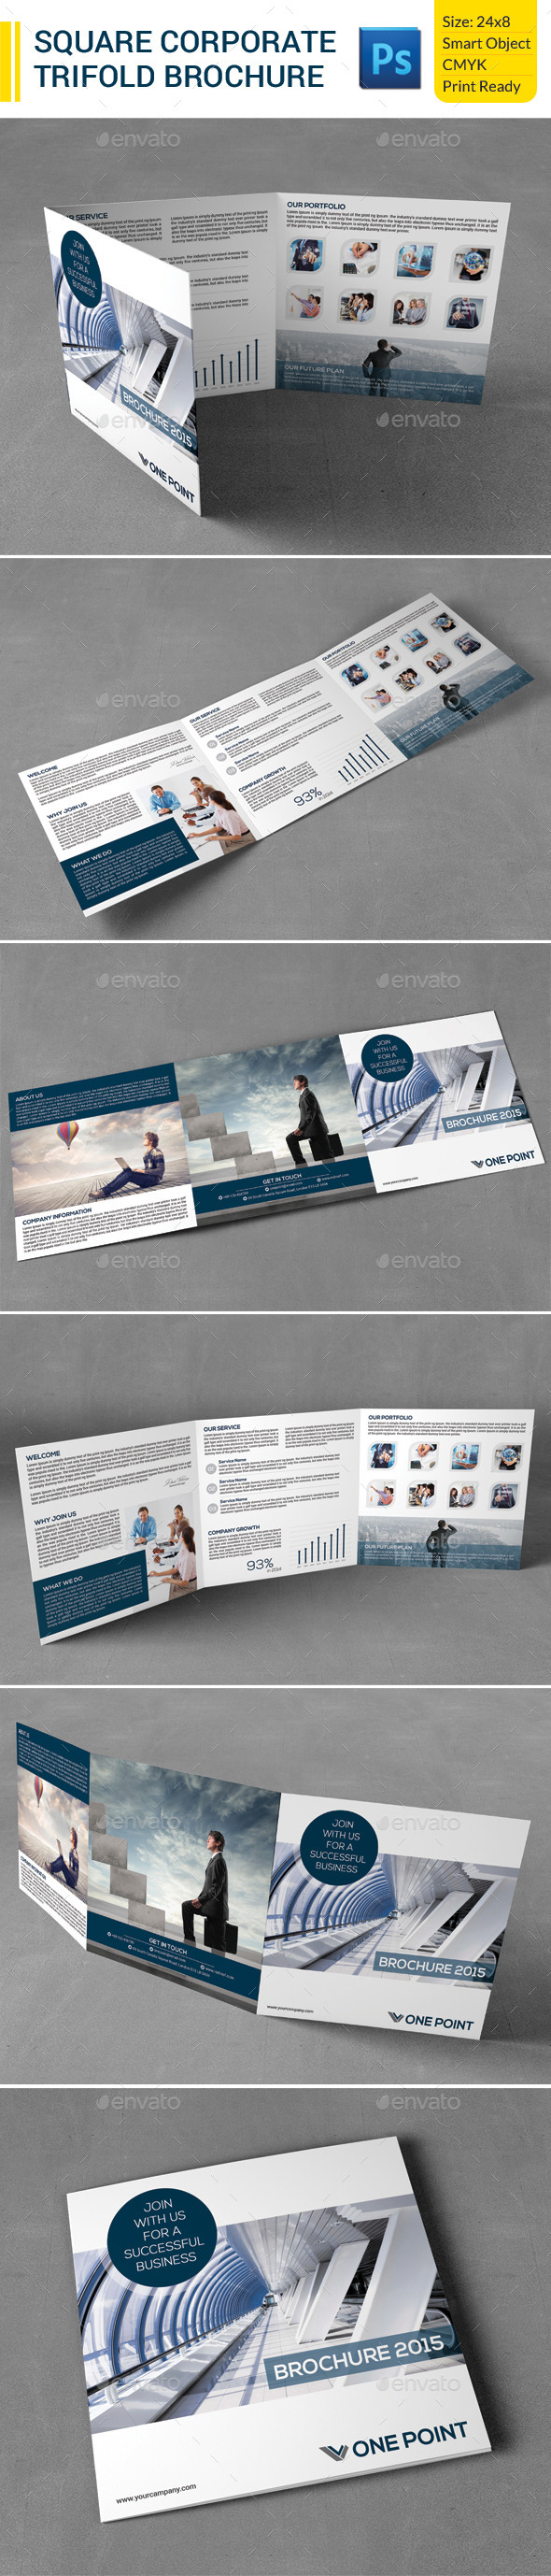 GraphicRiver Square Corporate Trifold Brochure 9819706